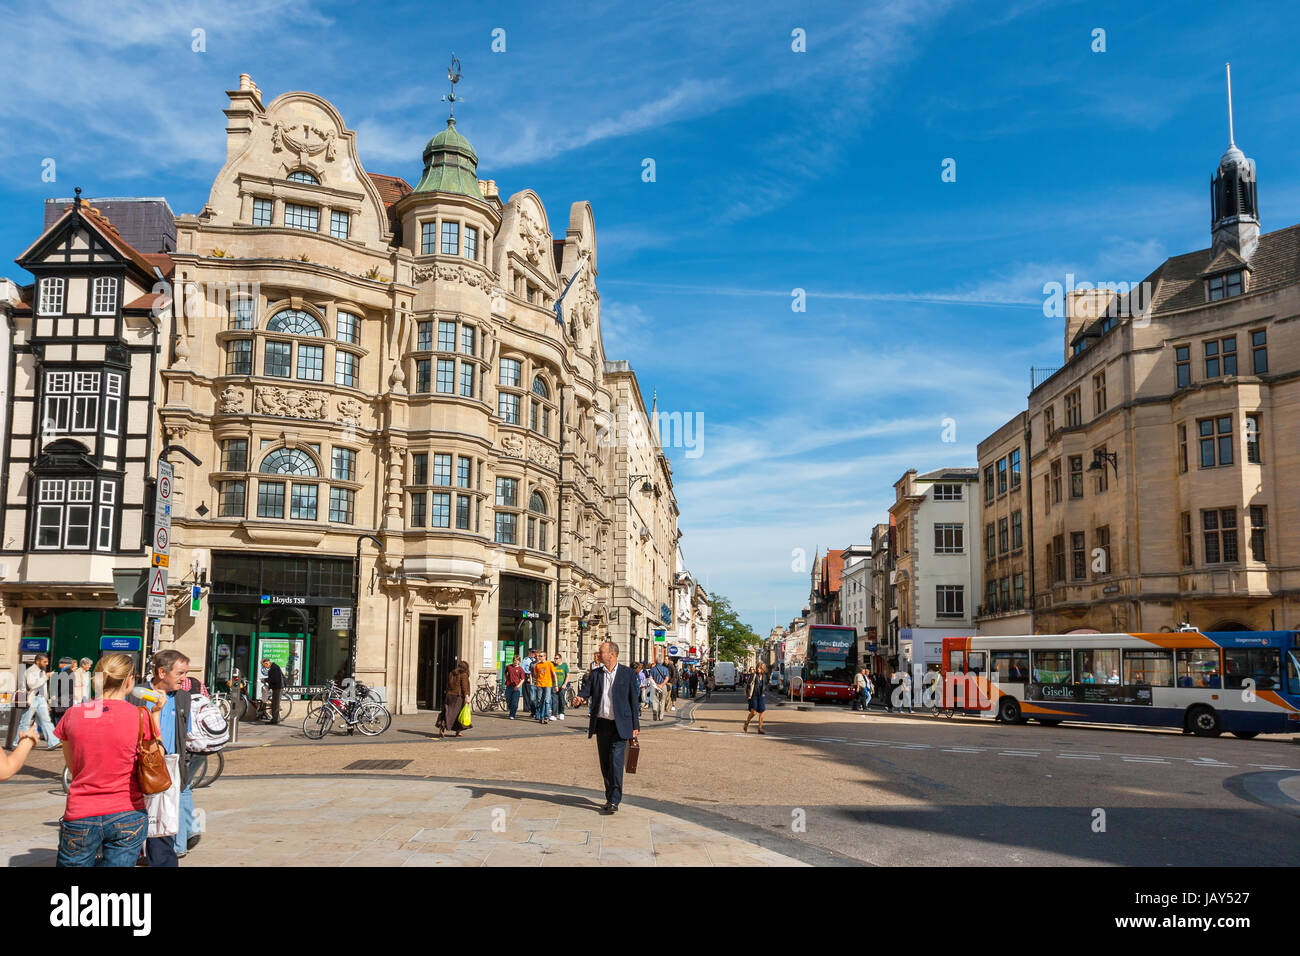 Everyday life on junction of High Street and Cornmarket Street in city centre. Oxford, England - Stock Image